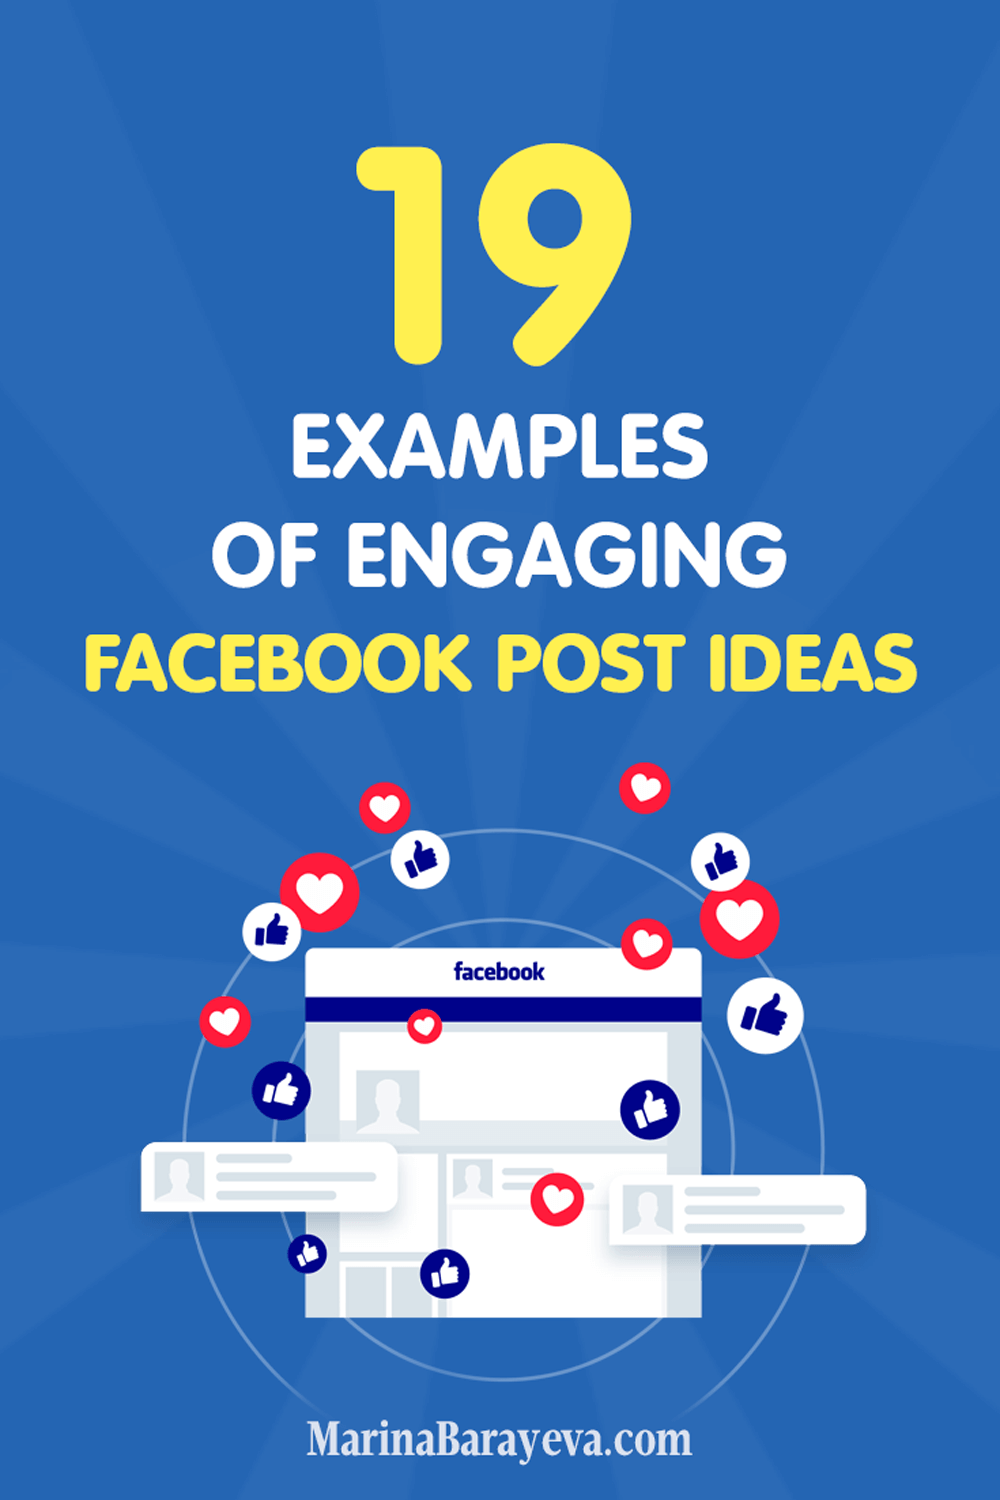 Check these 19 examples of Facebook post ideas to help you to connect with your audience via interesting posts about your industry. A regular Facebook post has text status update, video, photo or links. Pictures and videos get more likes and shares than only text, so implement them more, via @MarinaBarayeva. #socialmedia #socialmediatips #socialmediamarketing #smm #socailmediastrategy #creativeentrepreneur #facebook